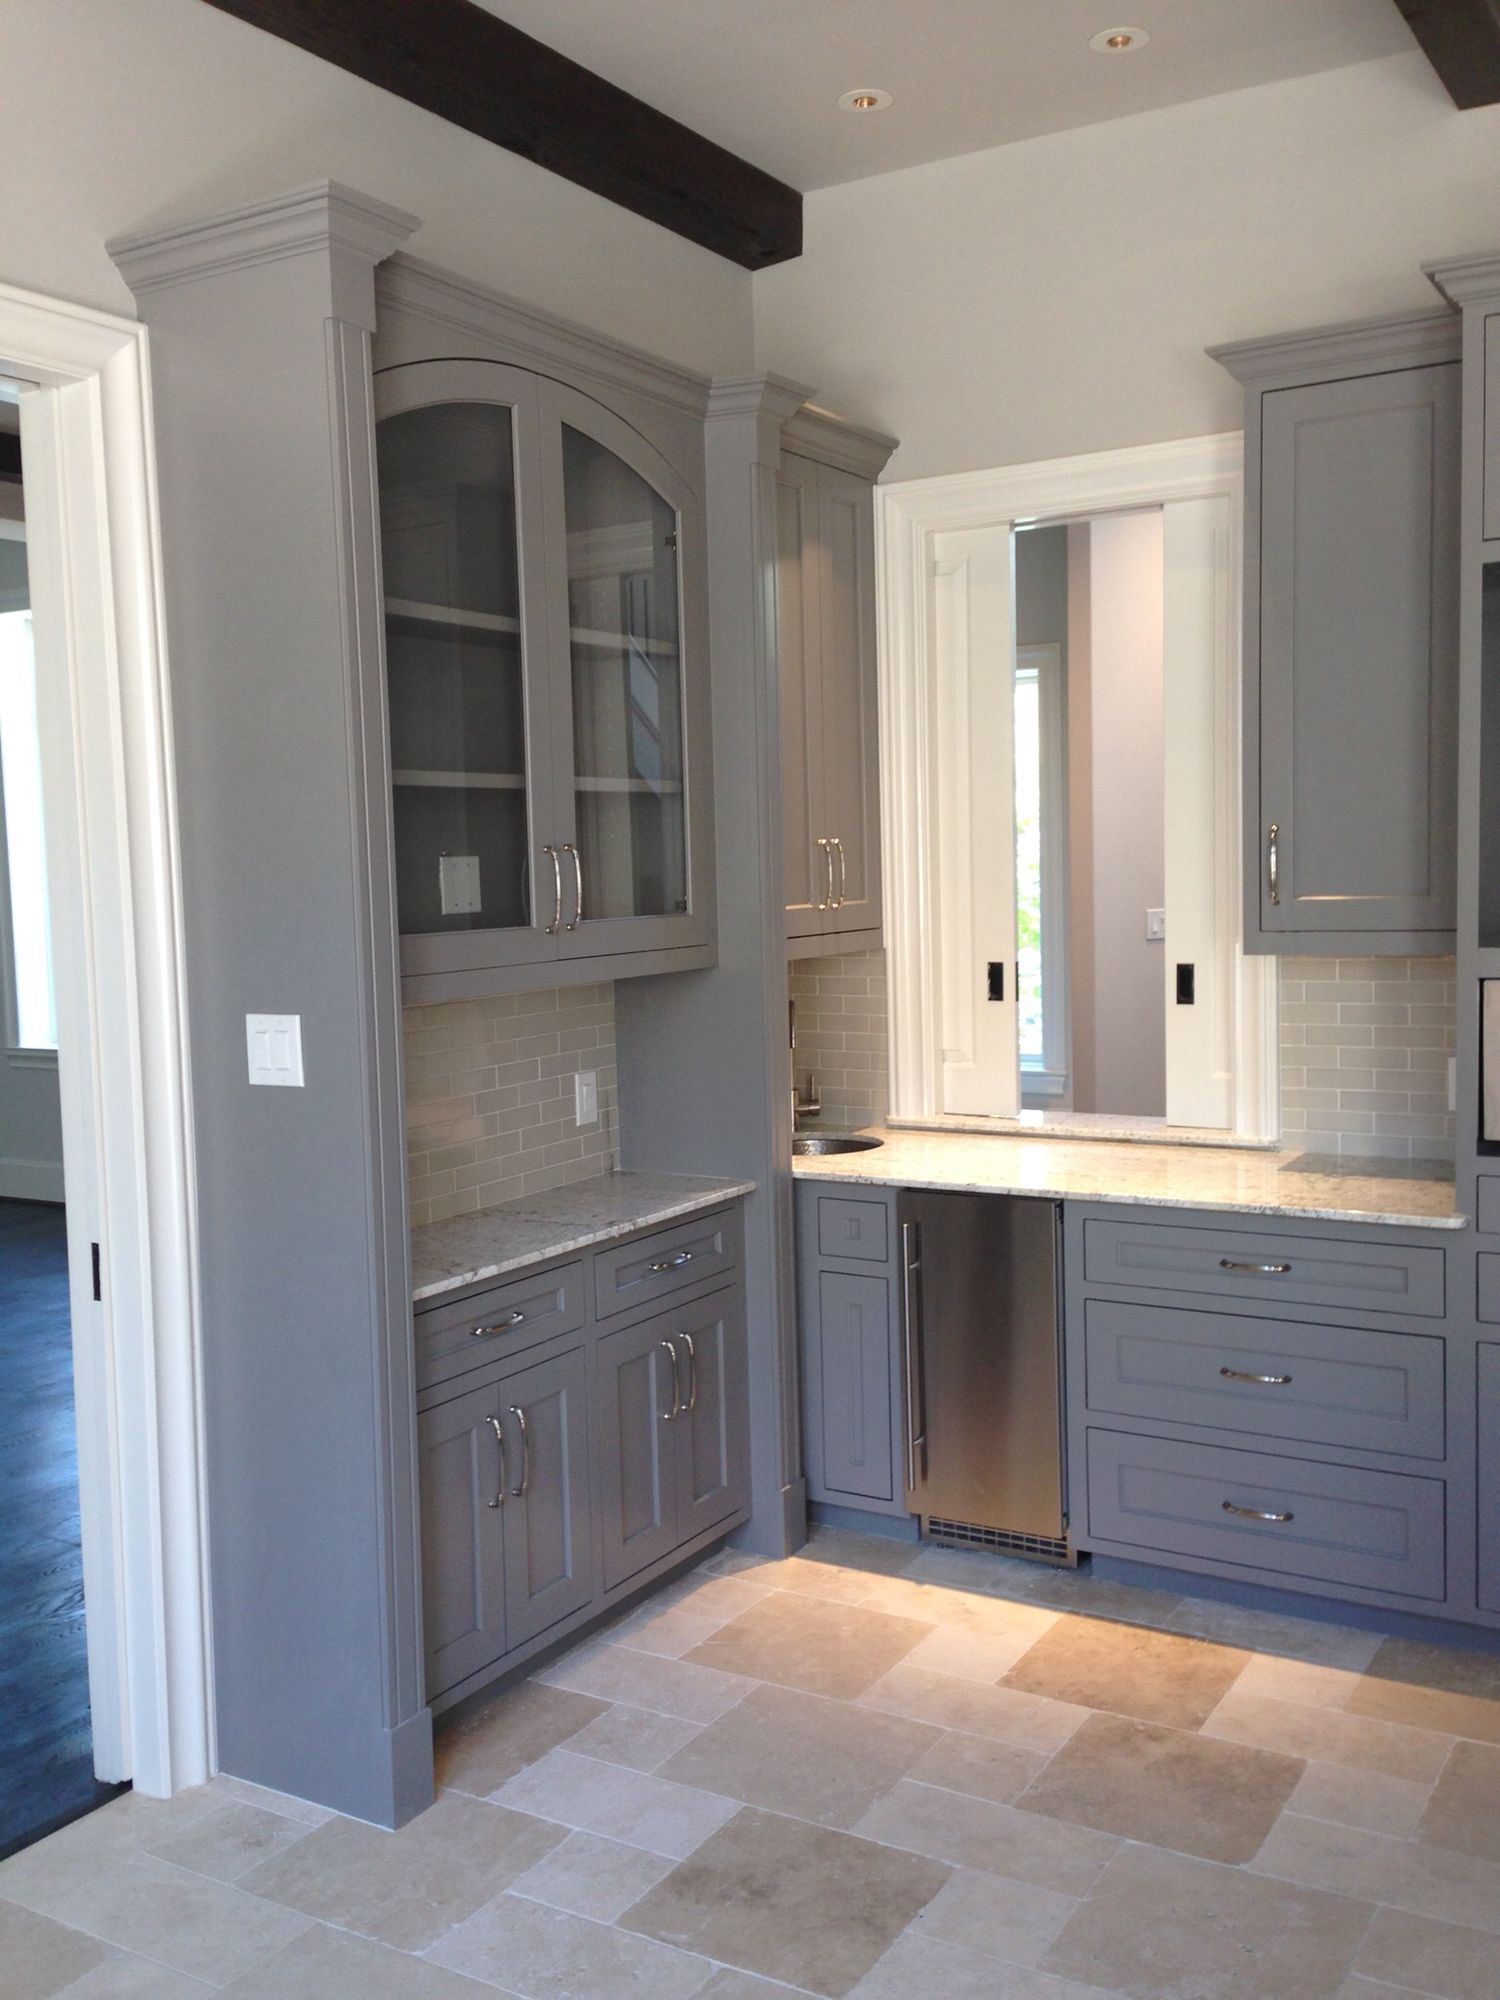 glass arch doors   Arched doors, Dream kitchens design ...